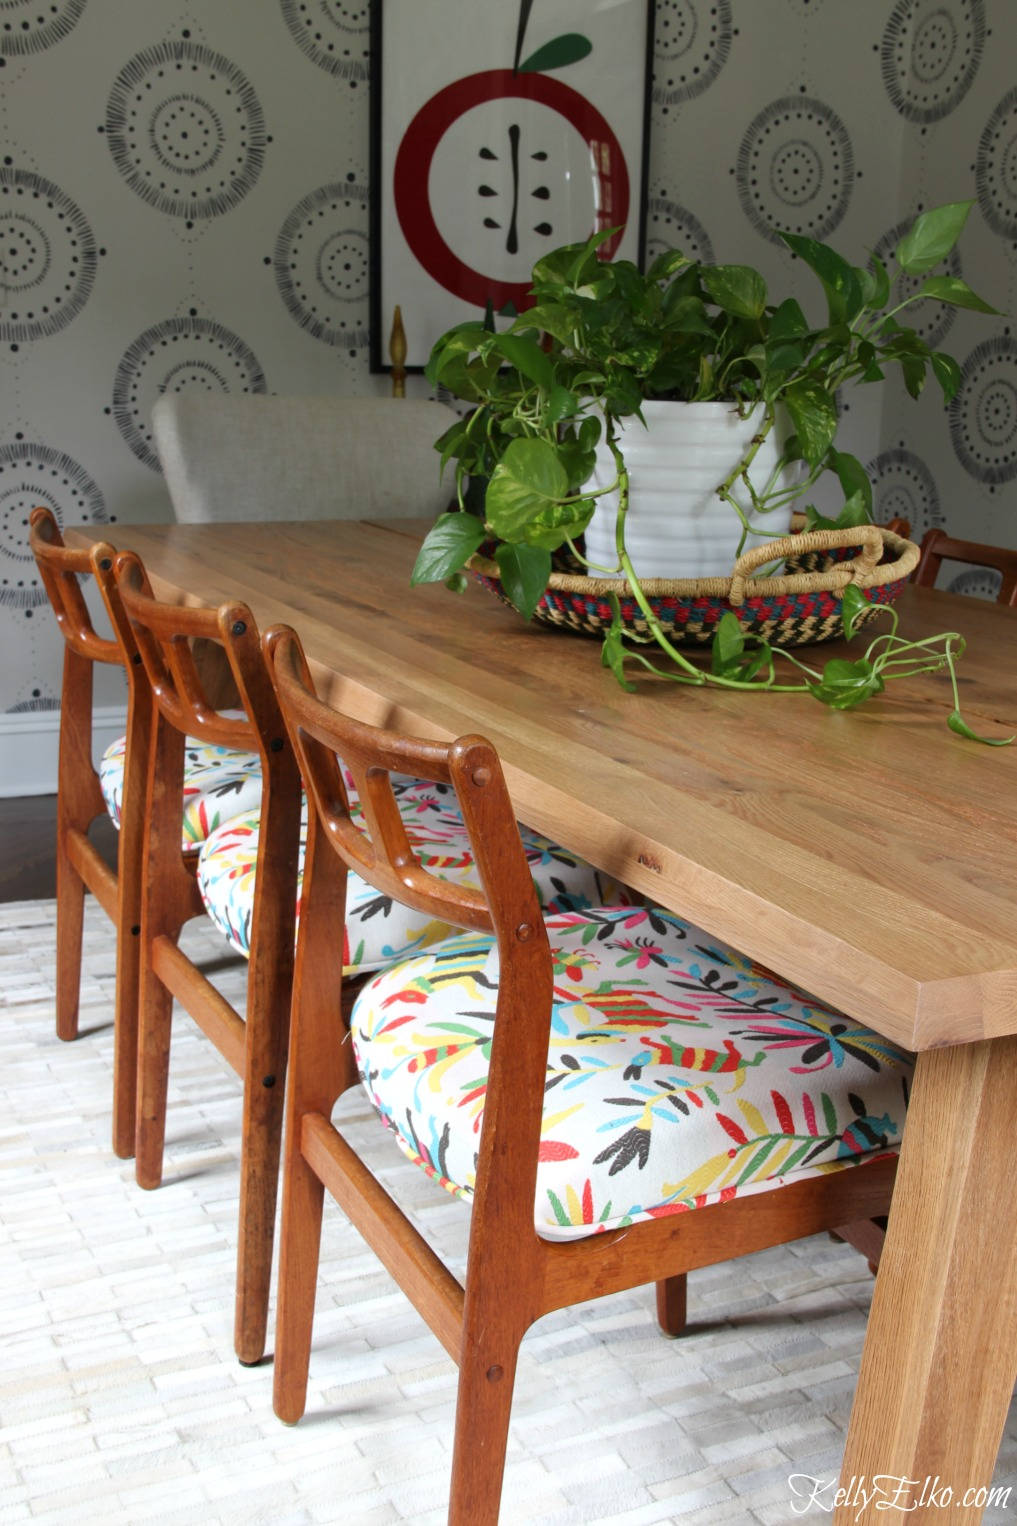 Article Dining Table And Vintage Chairs With Otomi Fabric Kellyelko.com  #diningroom #diningtable